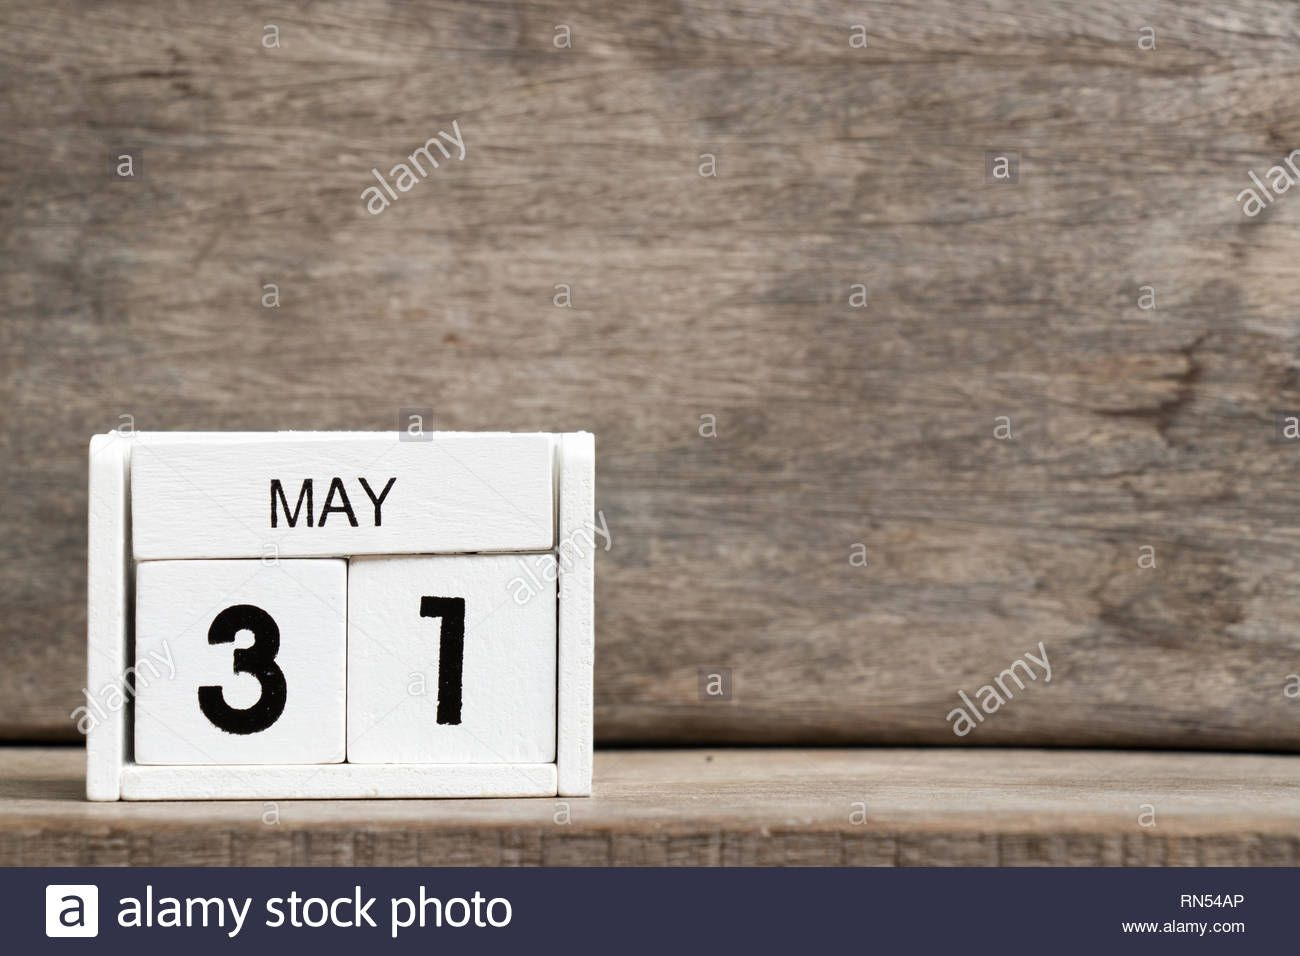 White Block Calendar Present Date 31 And Month May On Wood